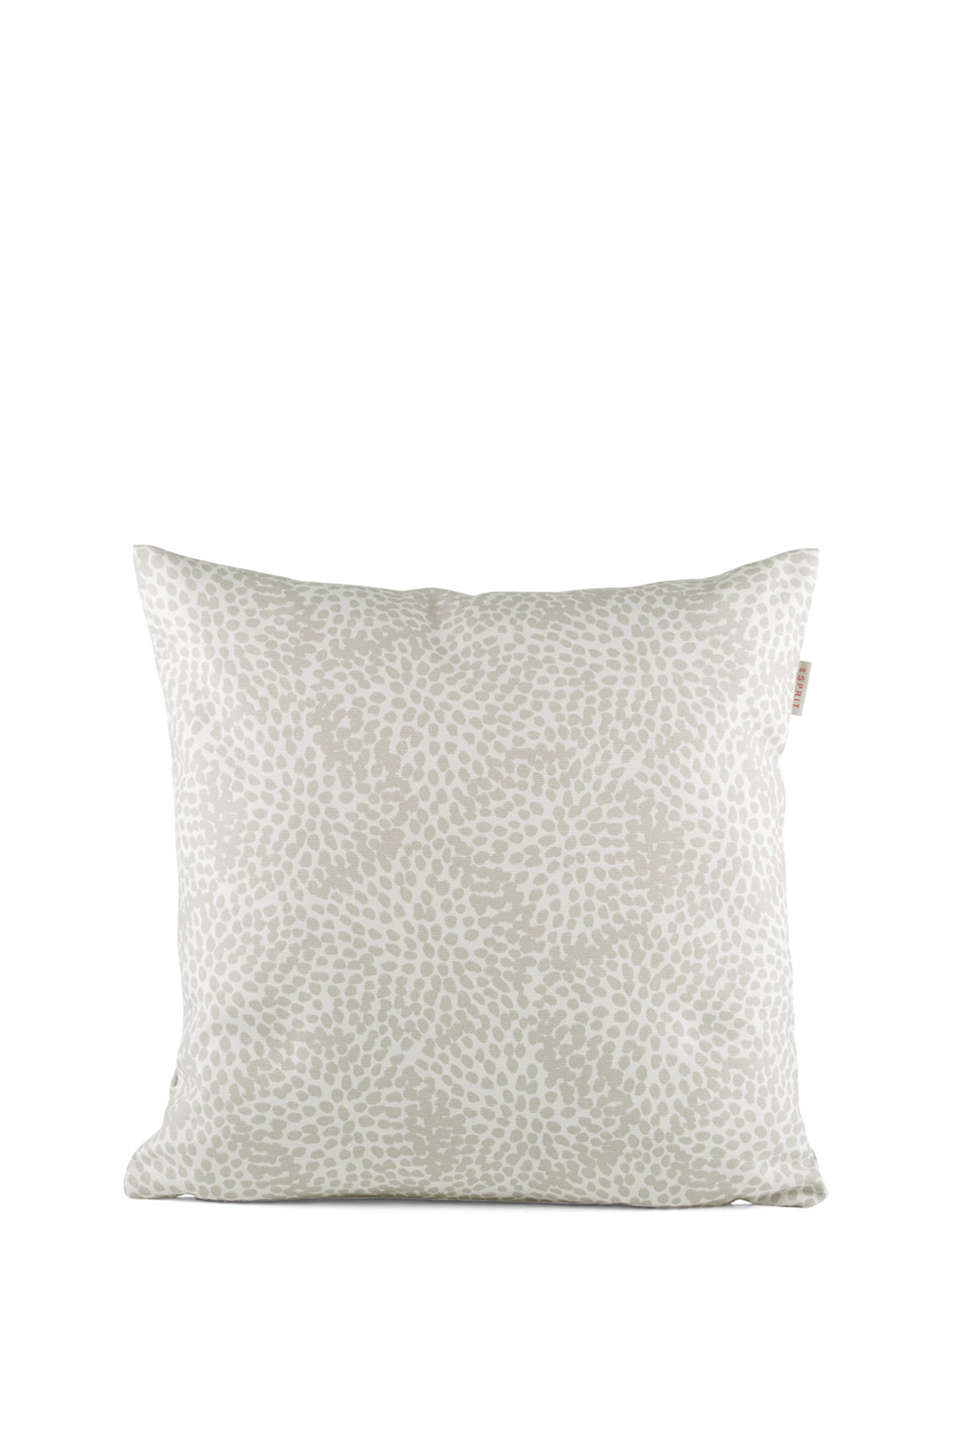 Esprit - Liv cushion cover with a digital print